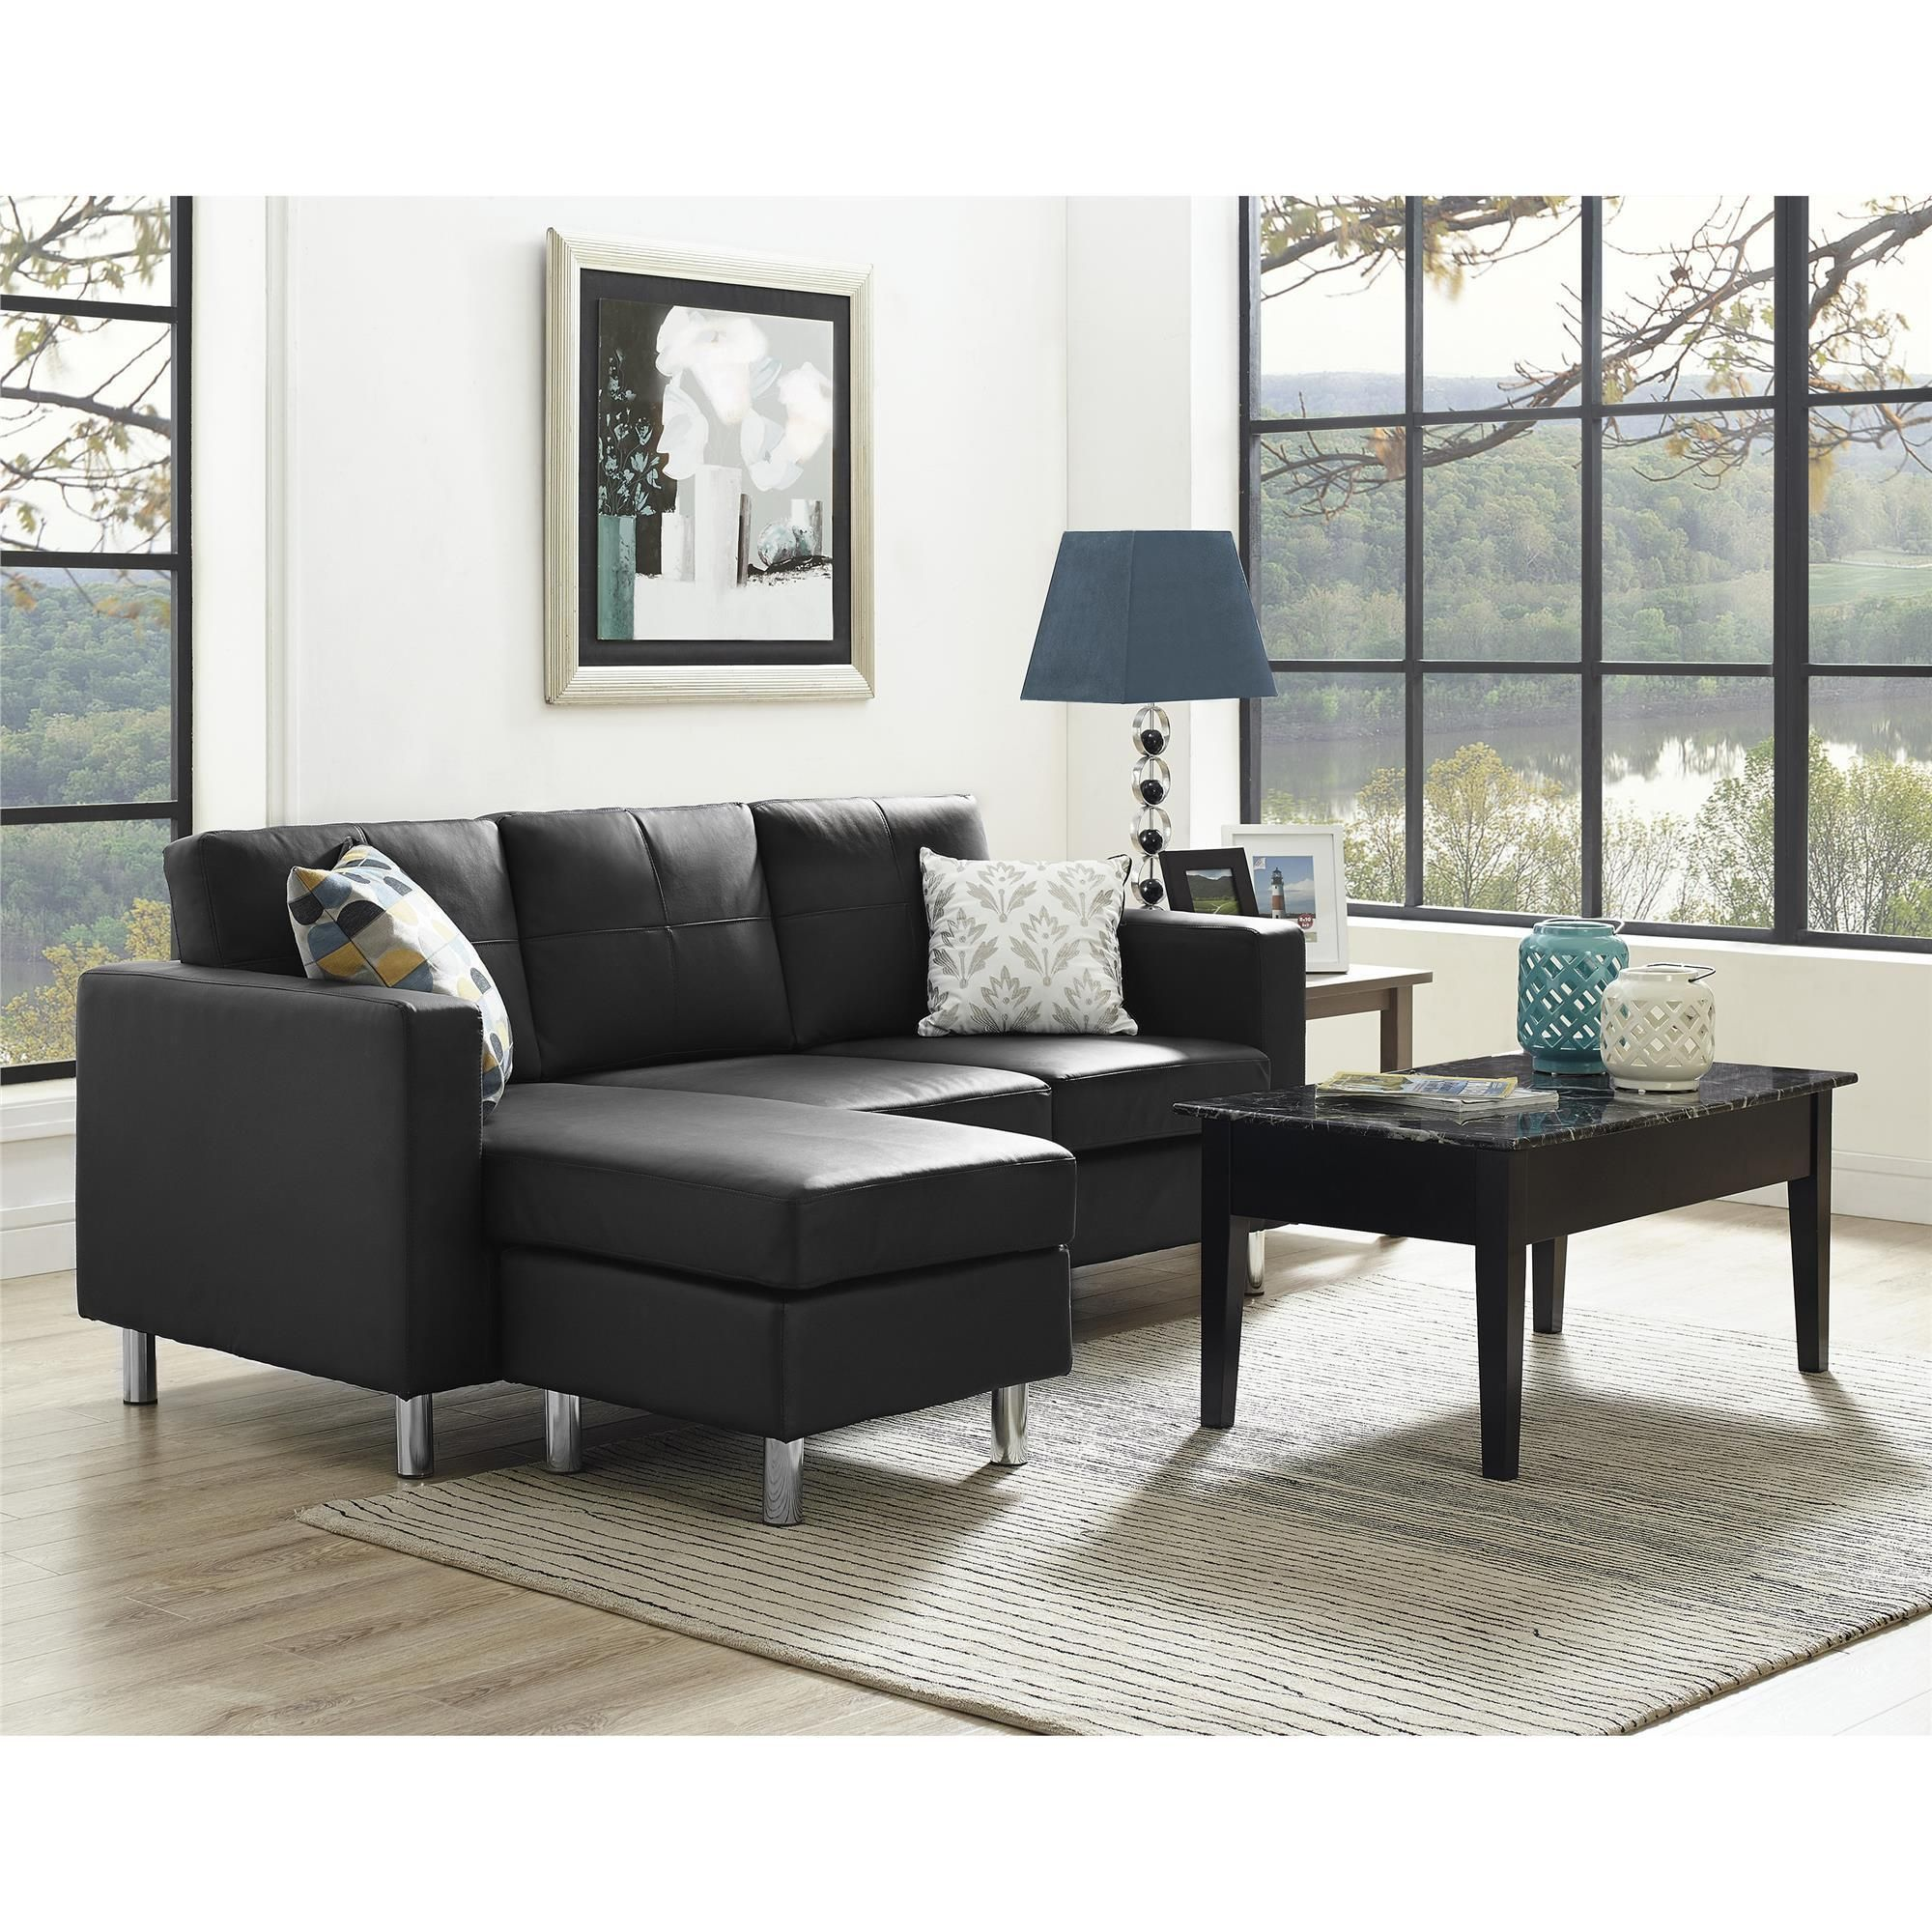 Have Comfortable And Stylish Seating Available With The Small Spaces  Configurable Sectional Sofa. This Configurable